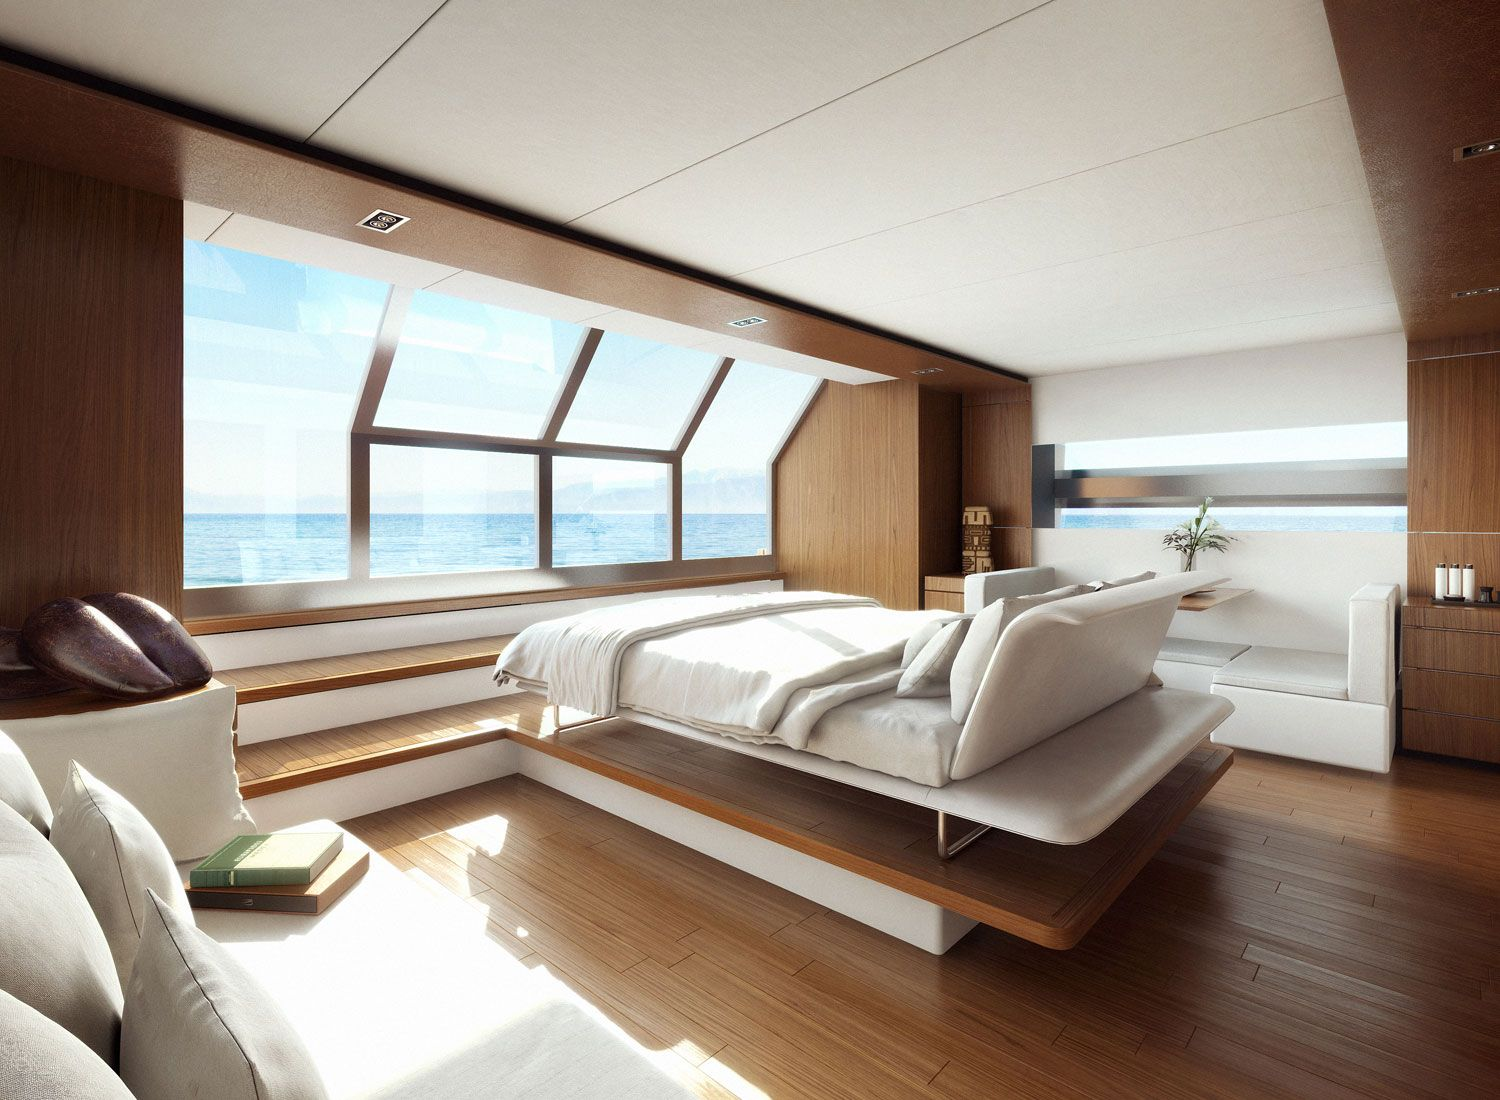 Wally Ace Is The Latest Creation From Our Favorite Shipyard Yachts Superyacht Boasts A Total Area Of 282 Sq Meters With Huge Open Spaces